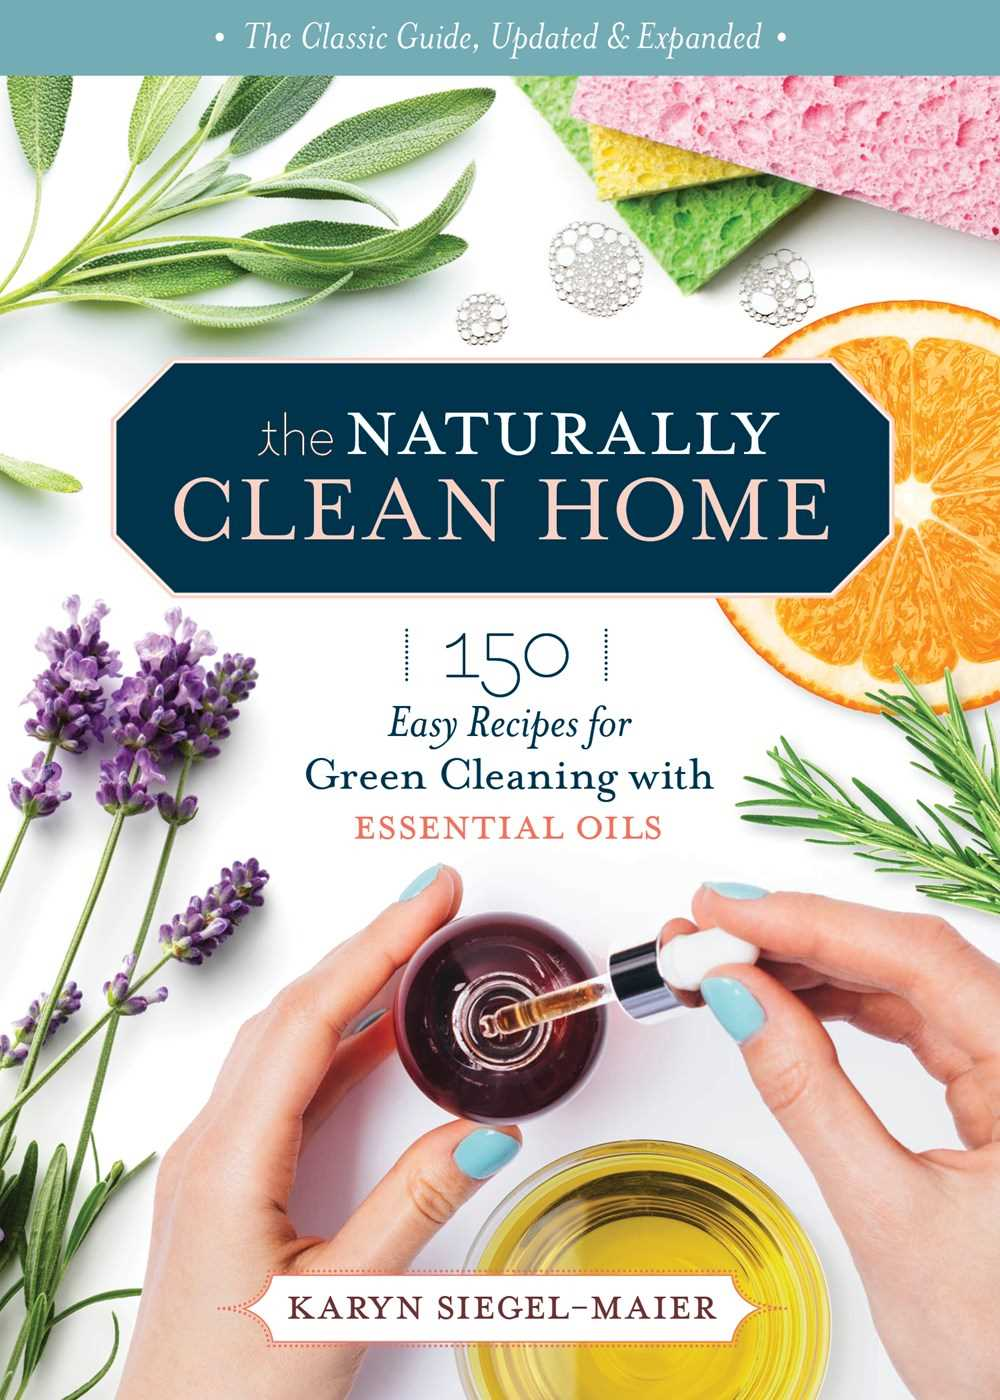 The Naturally Clean Home (3rd Edition)